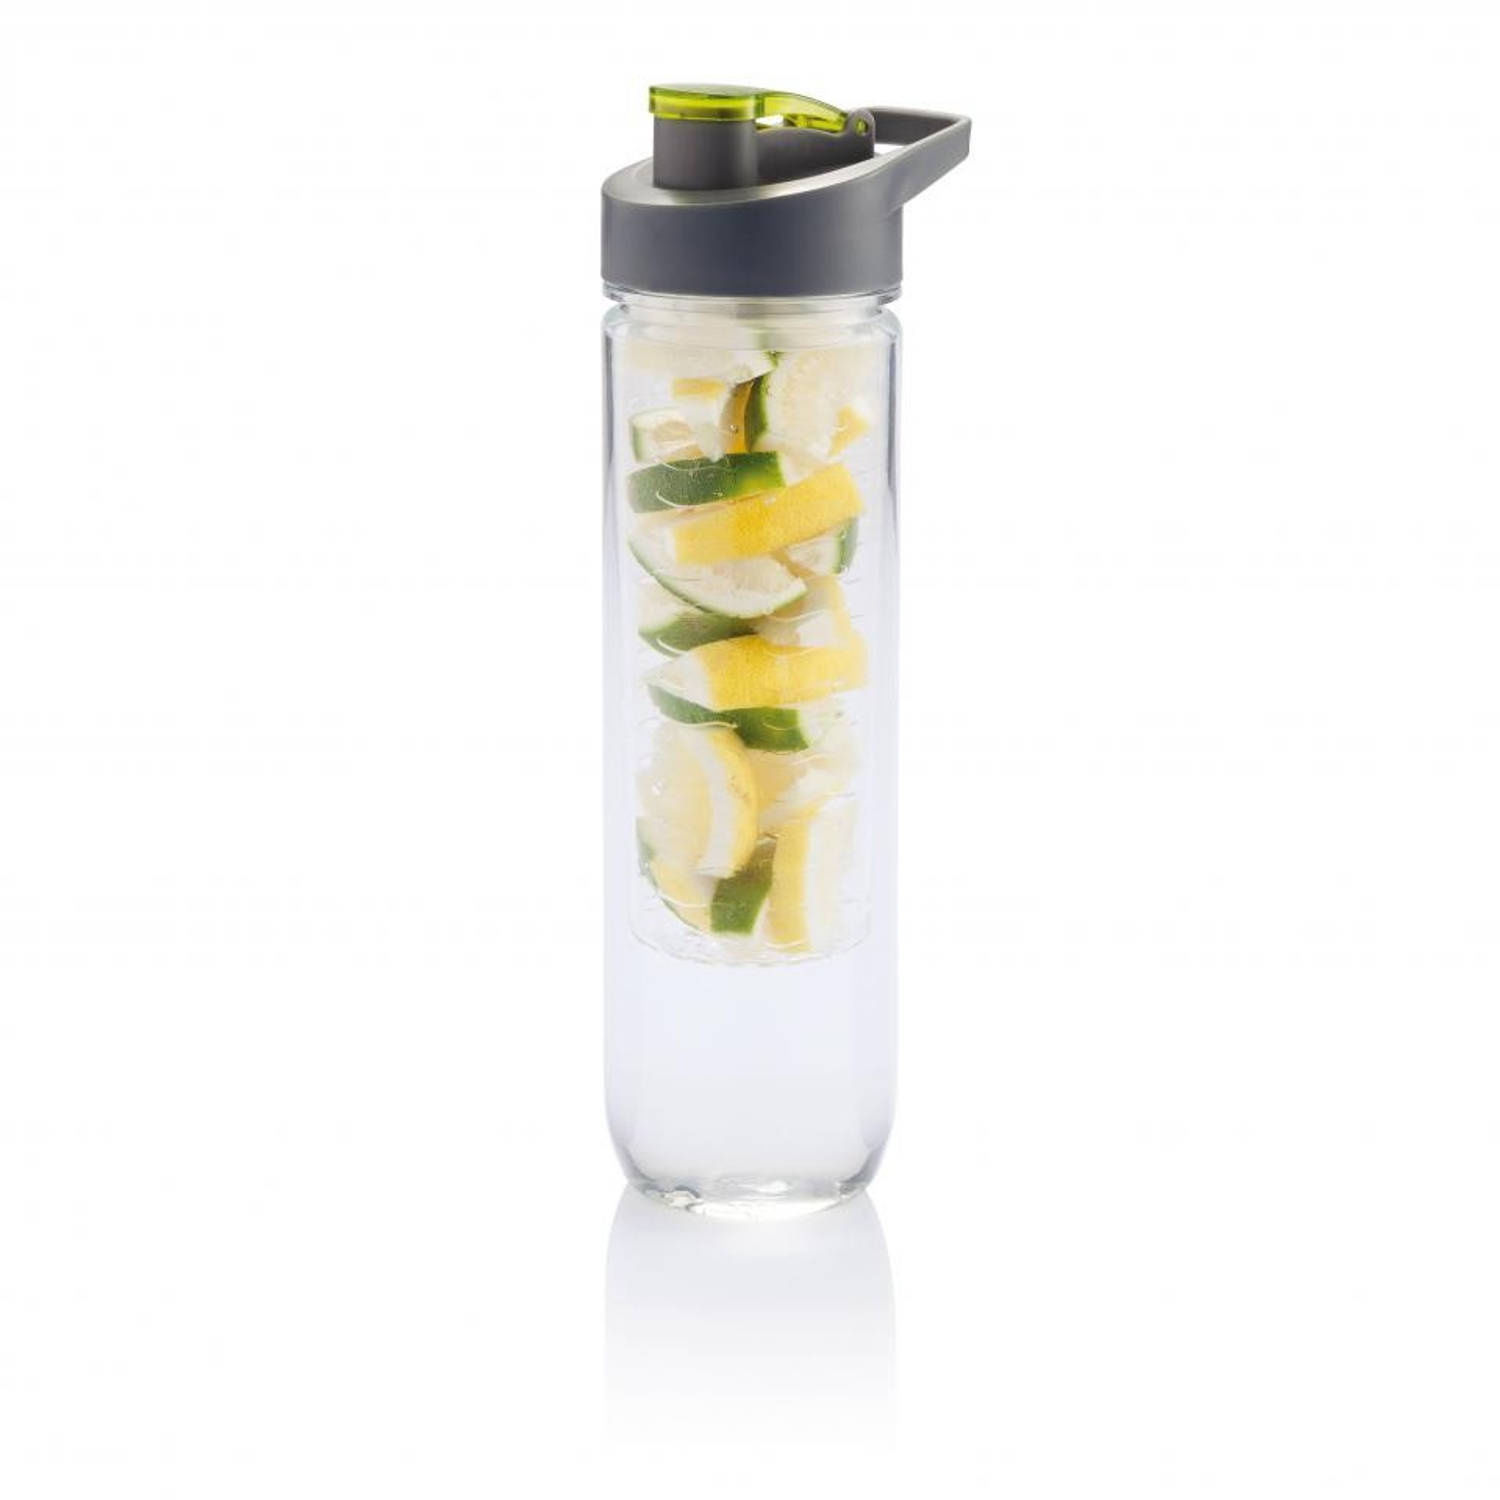 Loooqs Tritan drinkfles met fruit infuser - 800 ml - groen